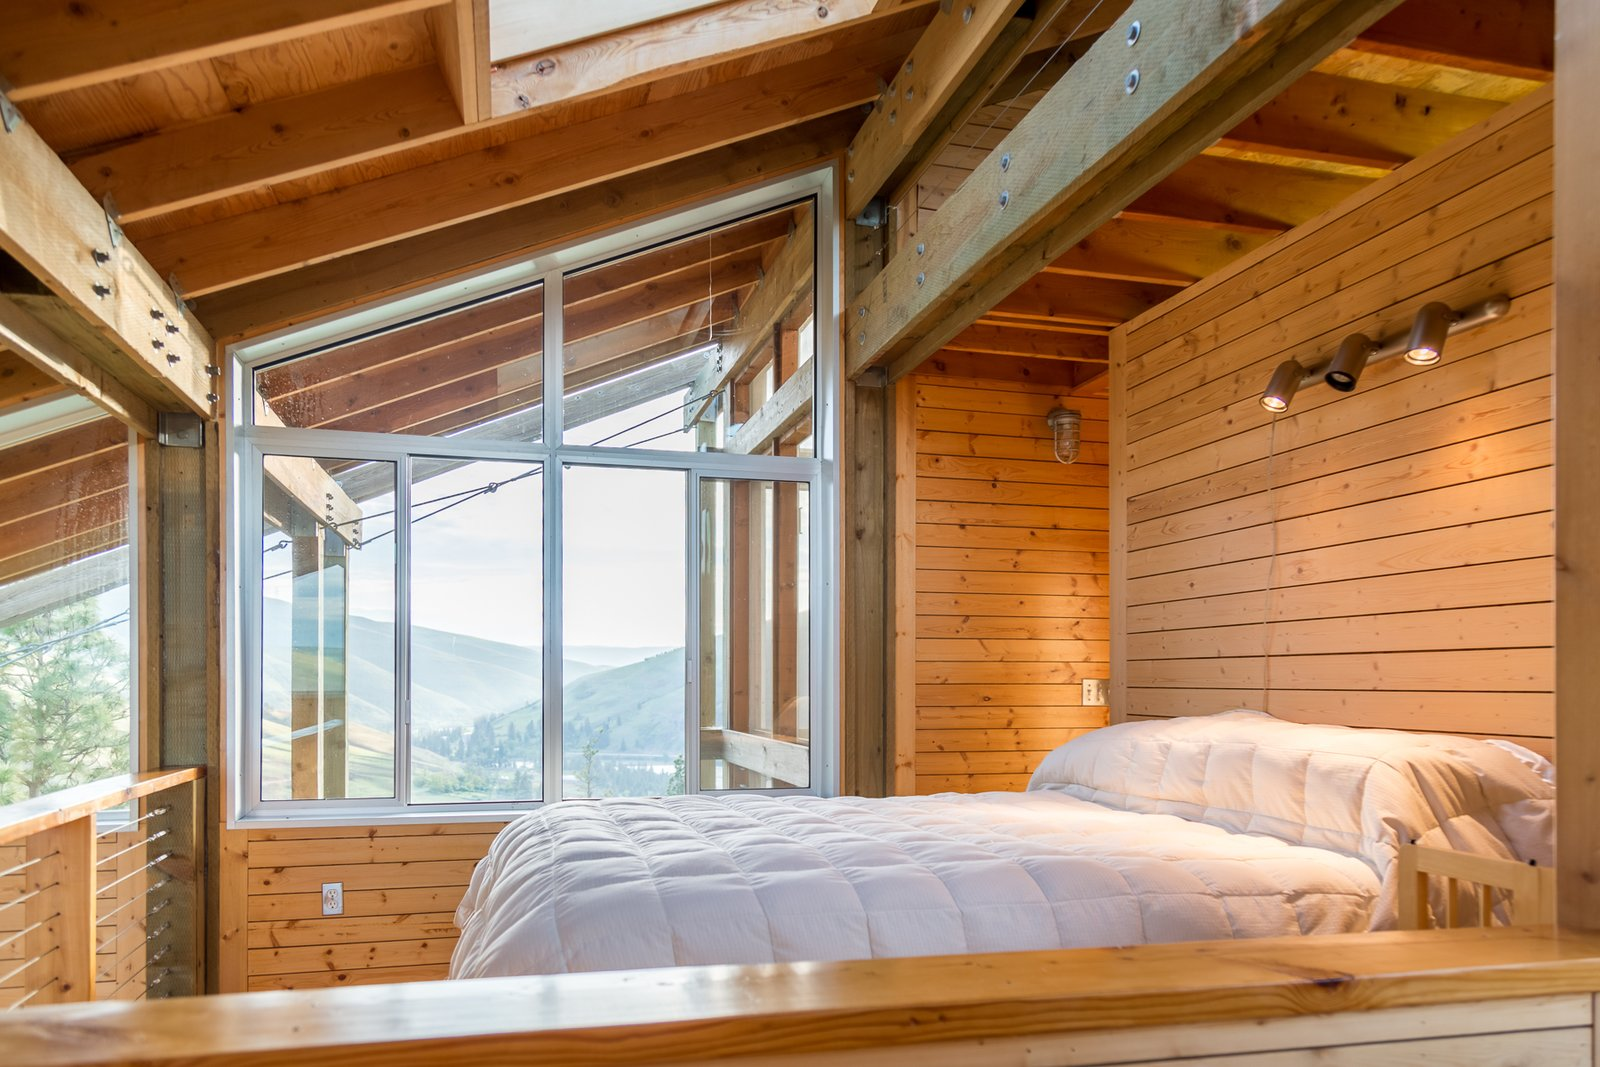 Bedroom, Track Lighting, Bed, and Wall Lighting The lofted bedroom has a snug, cabin-like feel.  Best Photos from Own This Award-Winning Riverside Home in Idaho For $650K